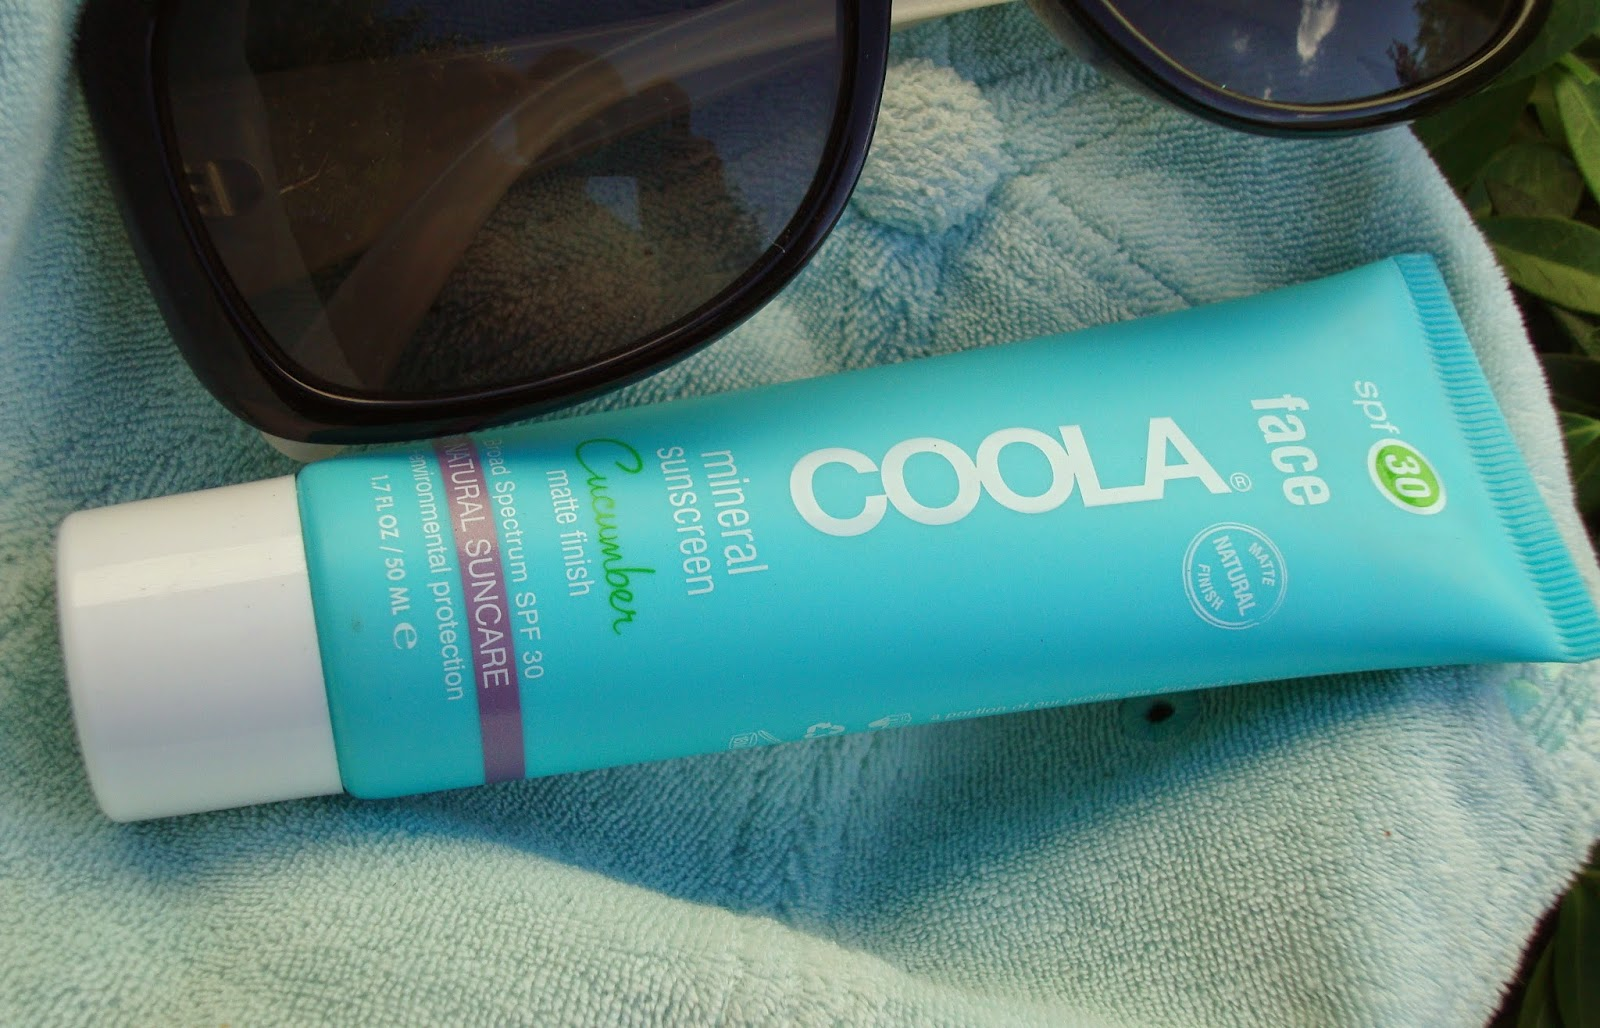 COOLA Organic Suncare Collection Face Mineral Sunscreen SPF 30 Matte Finish Cucumber